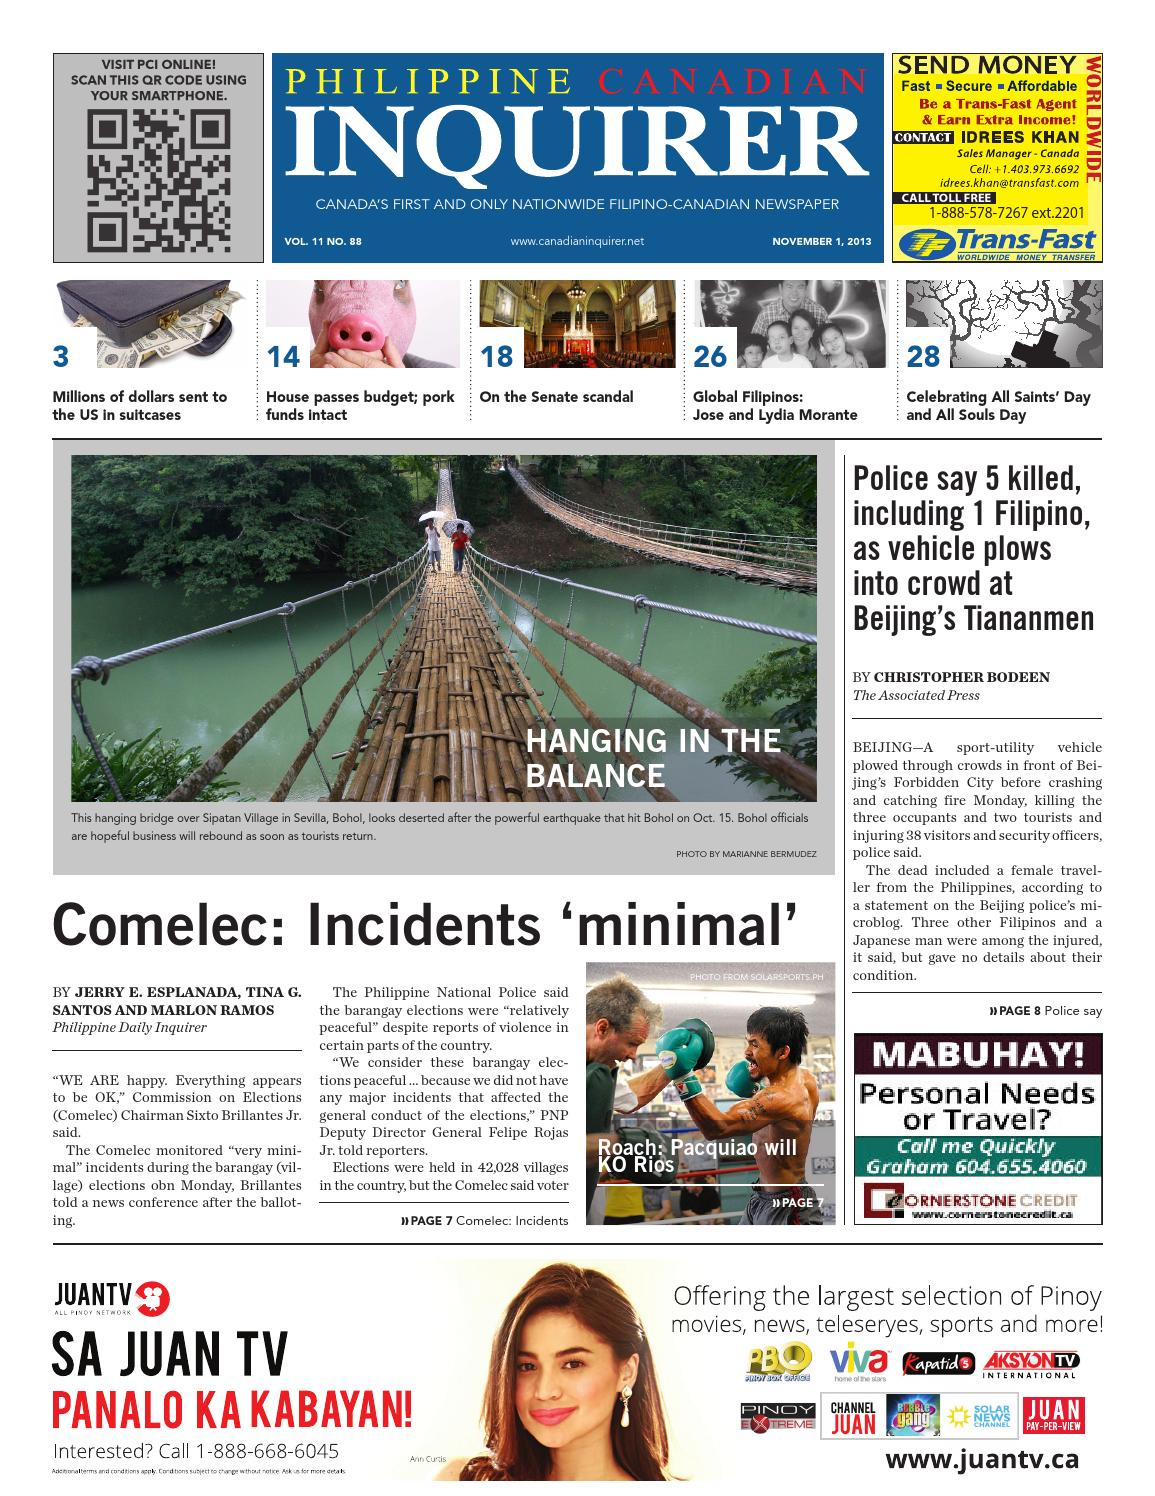 Philippine Canadian Inquirer Issue #88 by Philippine Canadian Inquirer -  issuu